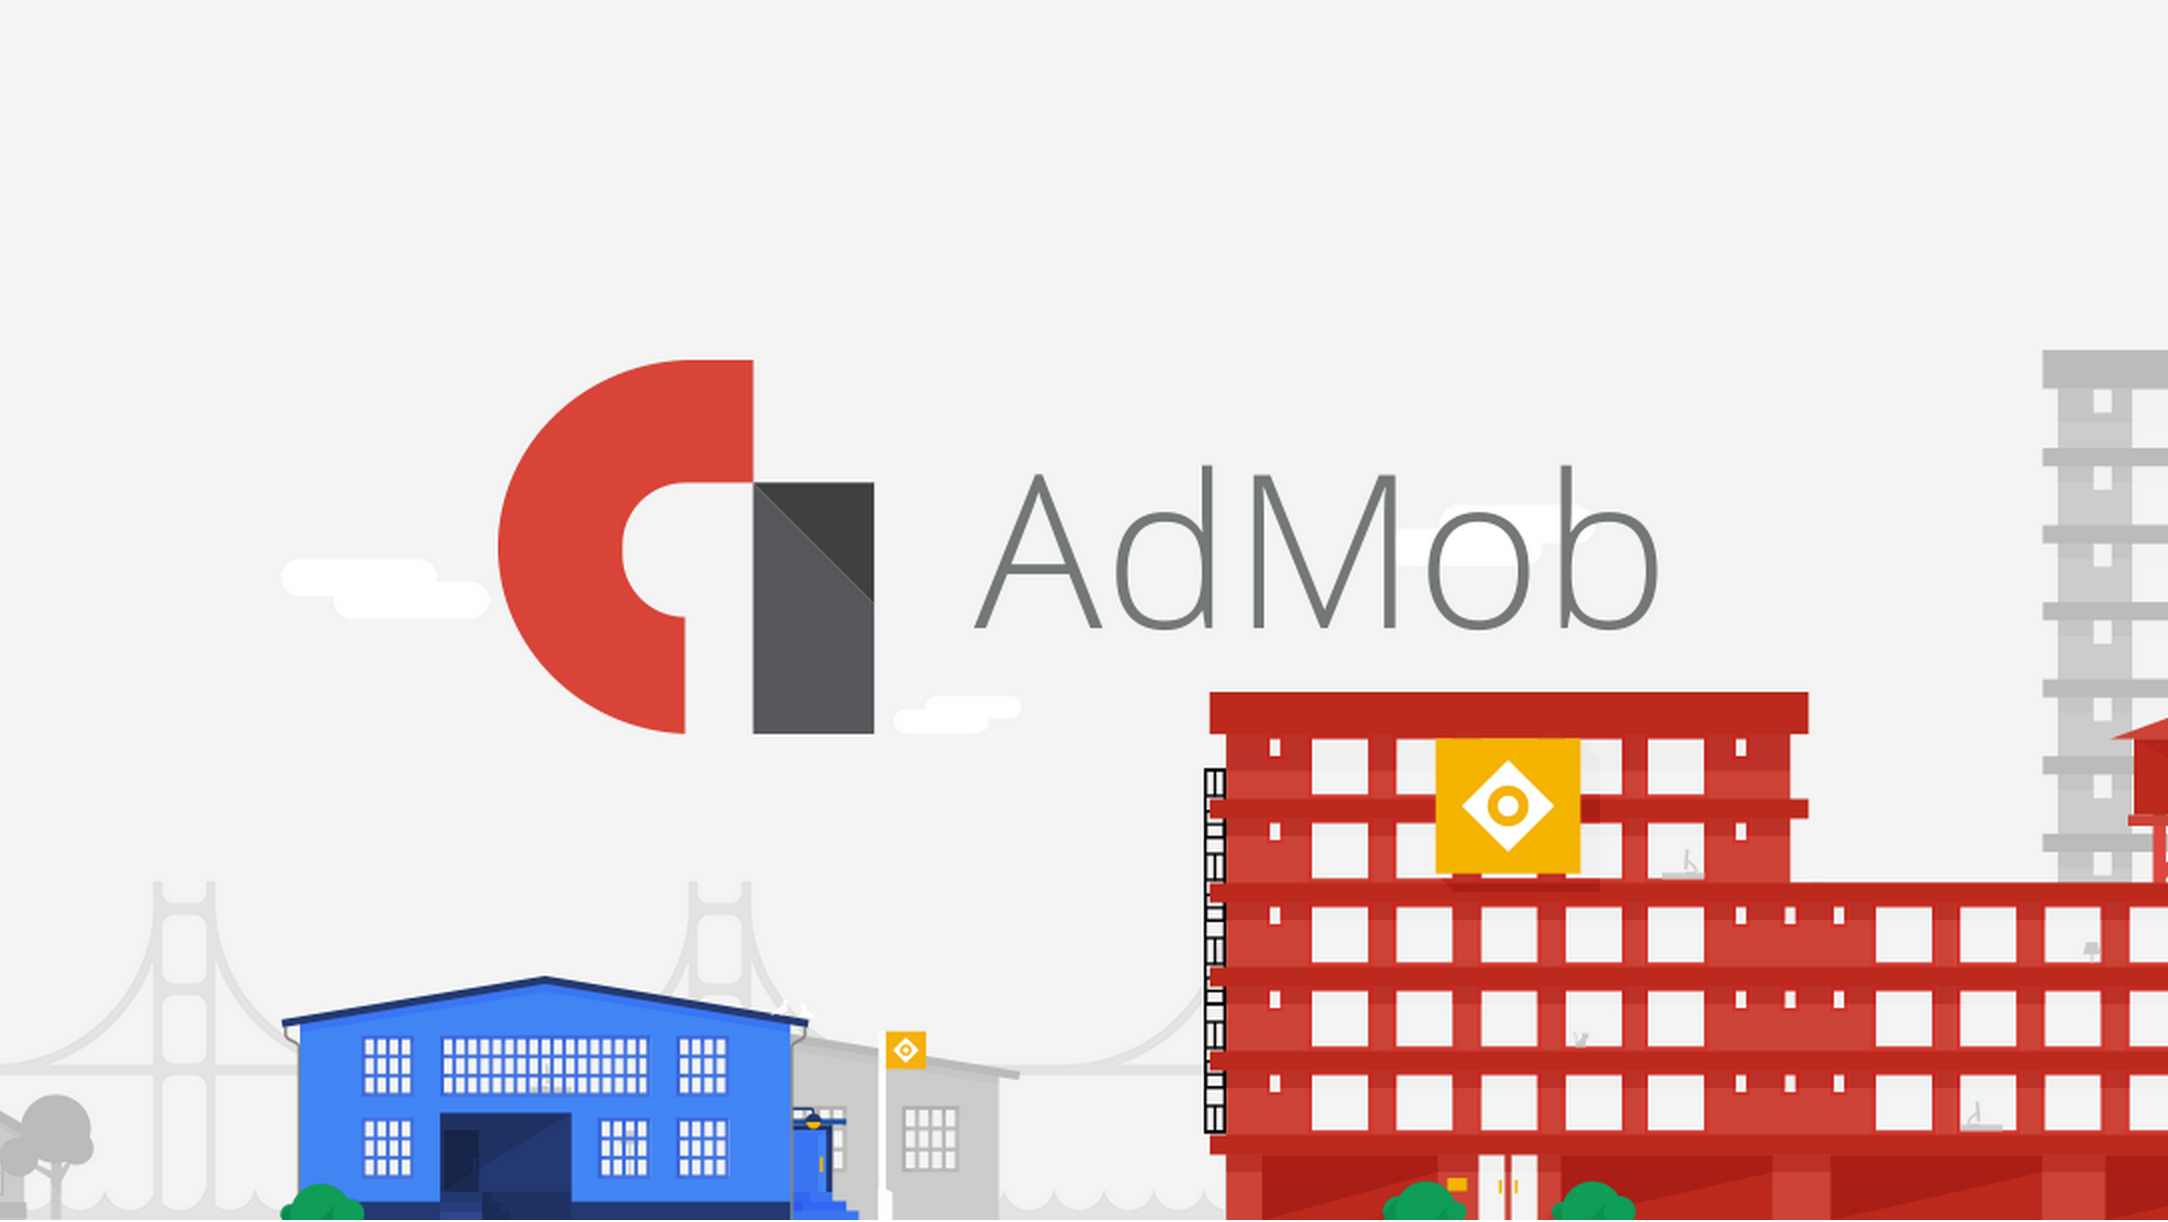 Google Debuts New AdMob Tools For Ad Targeting, Native Ads